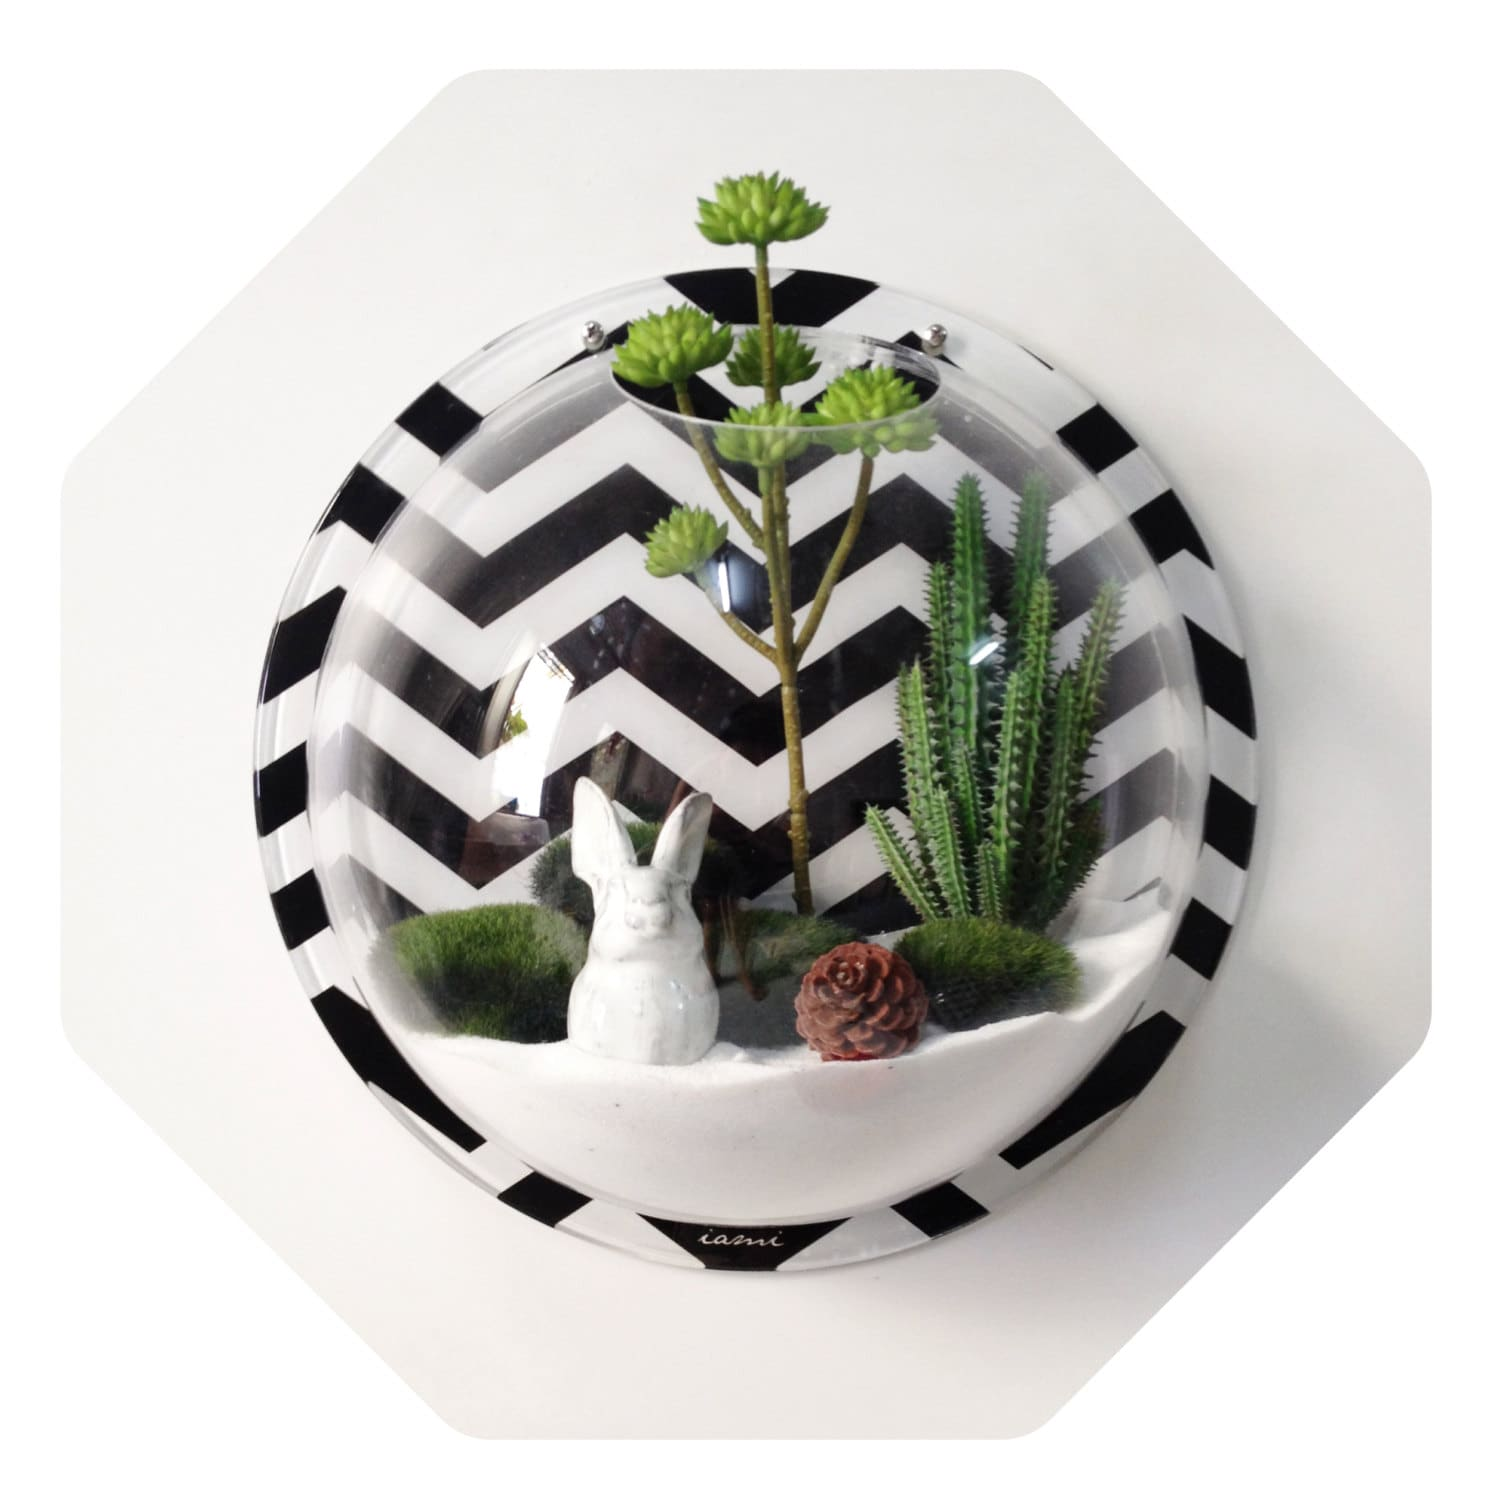 Zig zag home decor geometric fish bowl wall dome by iamiclover for Decorative fish bowls